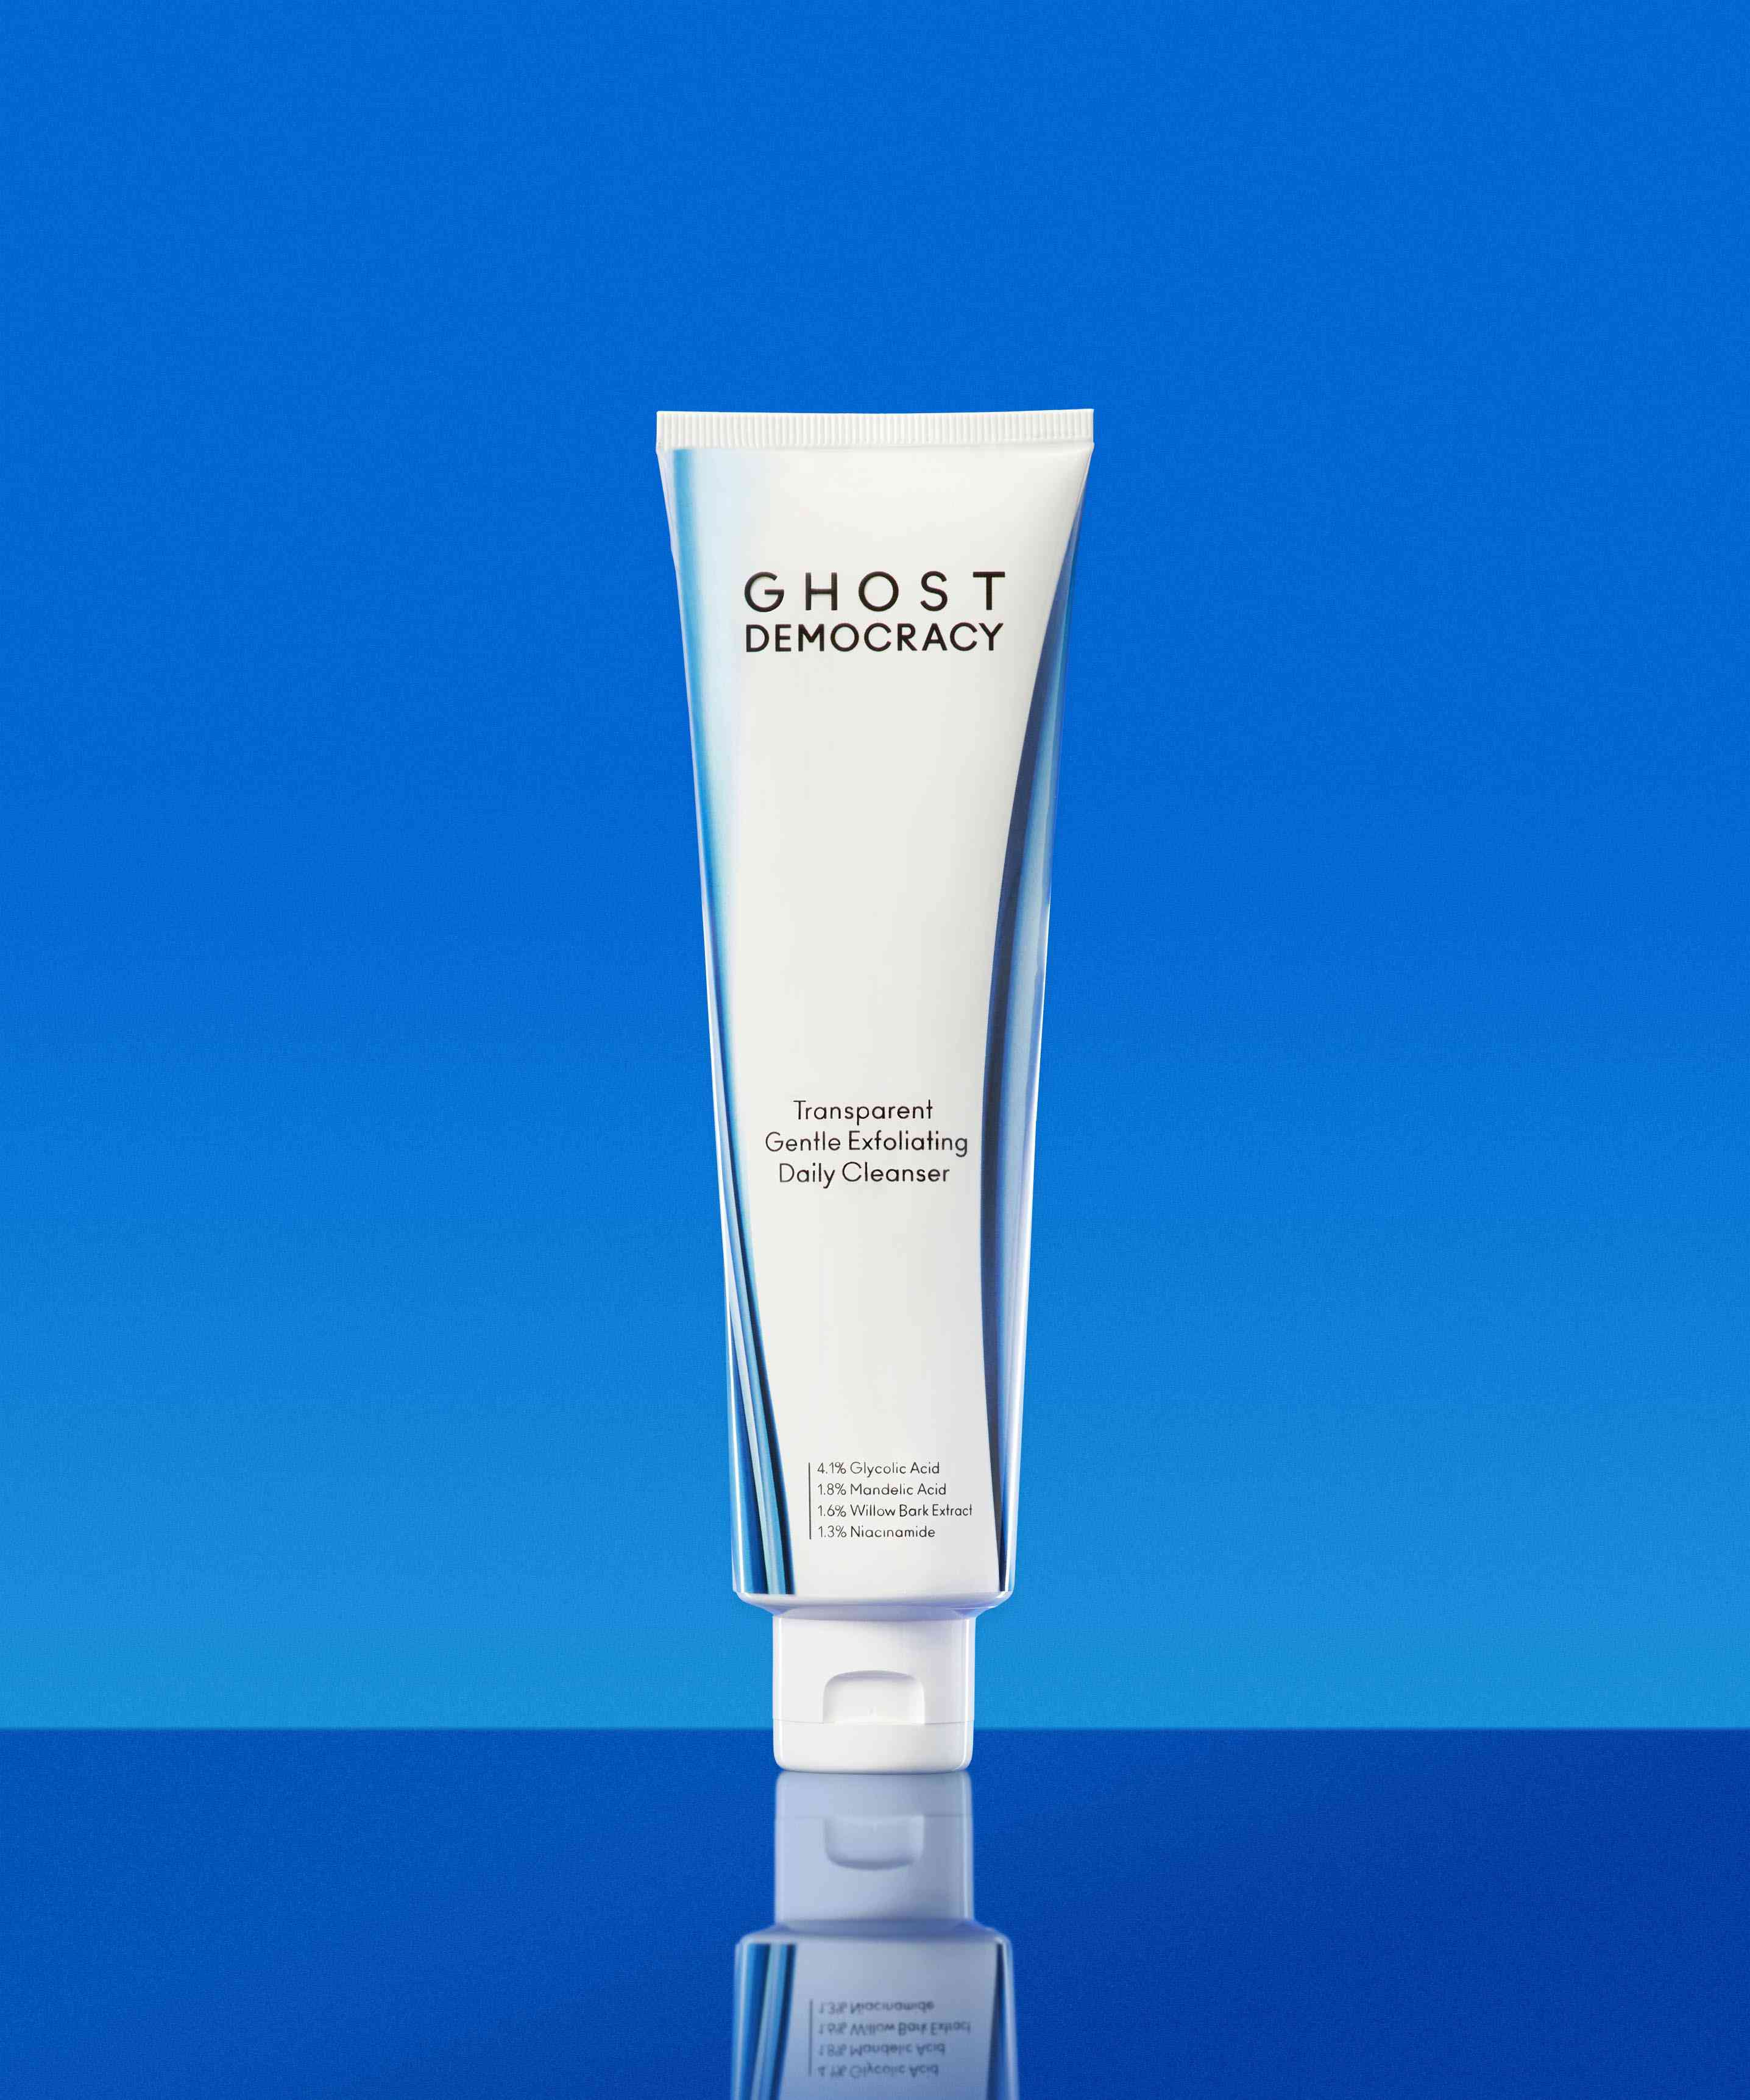 Ghost Democracy Transparent Gentle Exfoliating Daily Cleanser